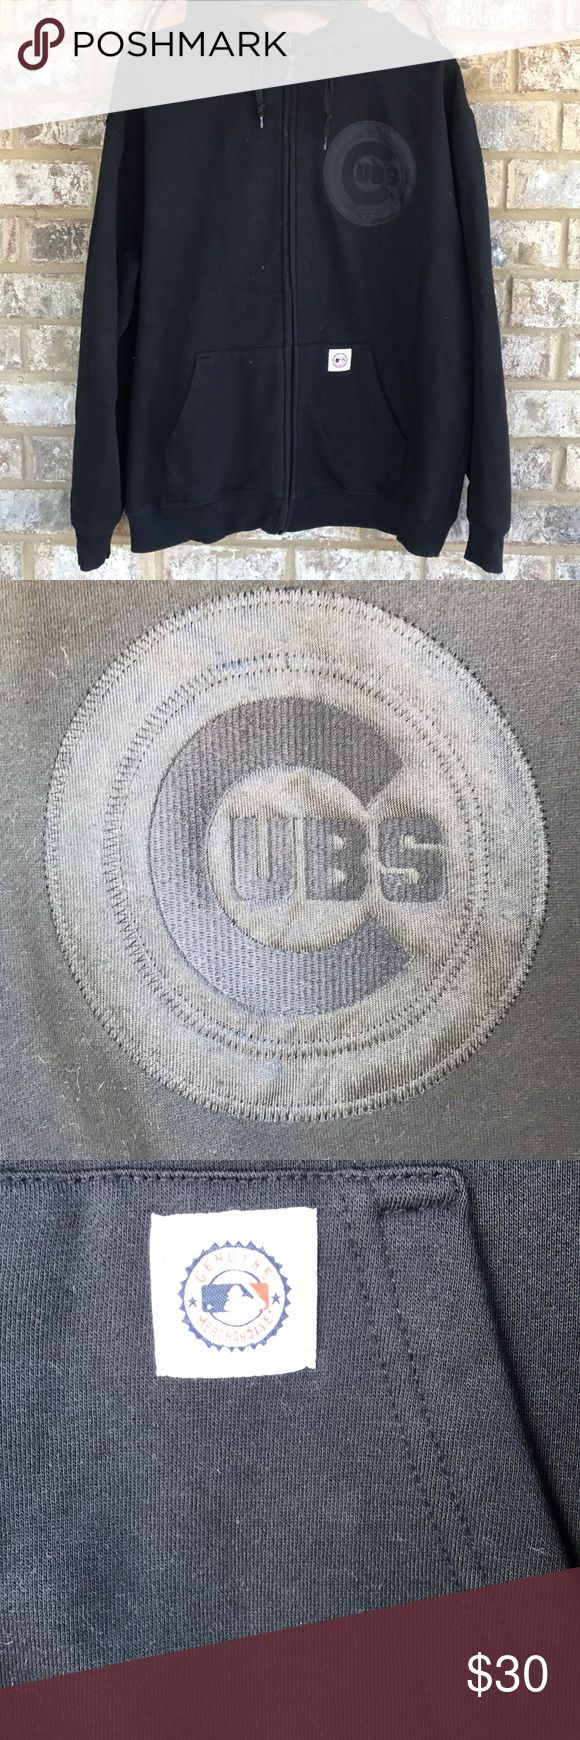 THANKSGIVING SALE 🎉 Chicago Cubs black zip hoodie All black  GENUINE MERCHANDISE  Worn once or twice  Gently loved :)  Size large  UNISEX ITEM 👍🏼 Stitches Shirts Sweatshirts & Hoodies